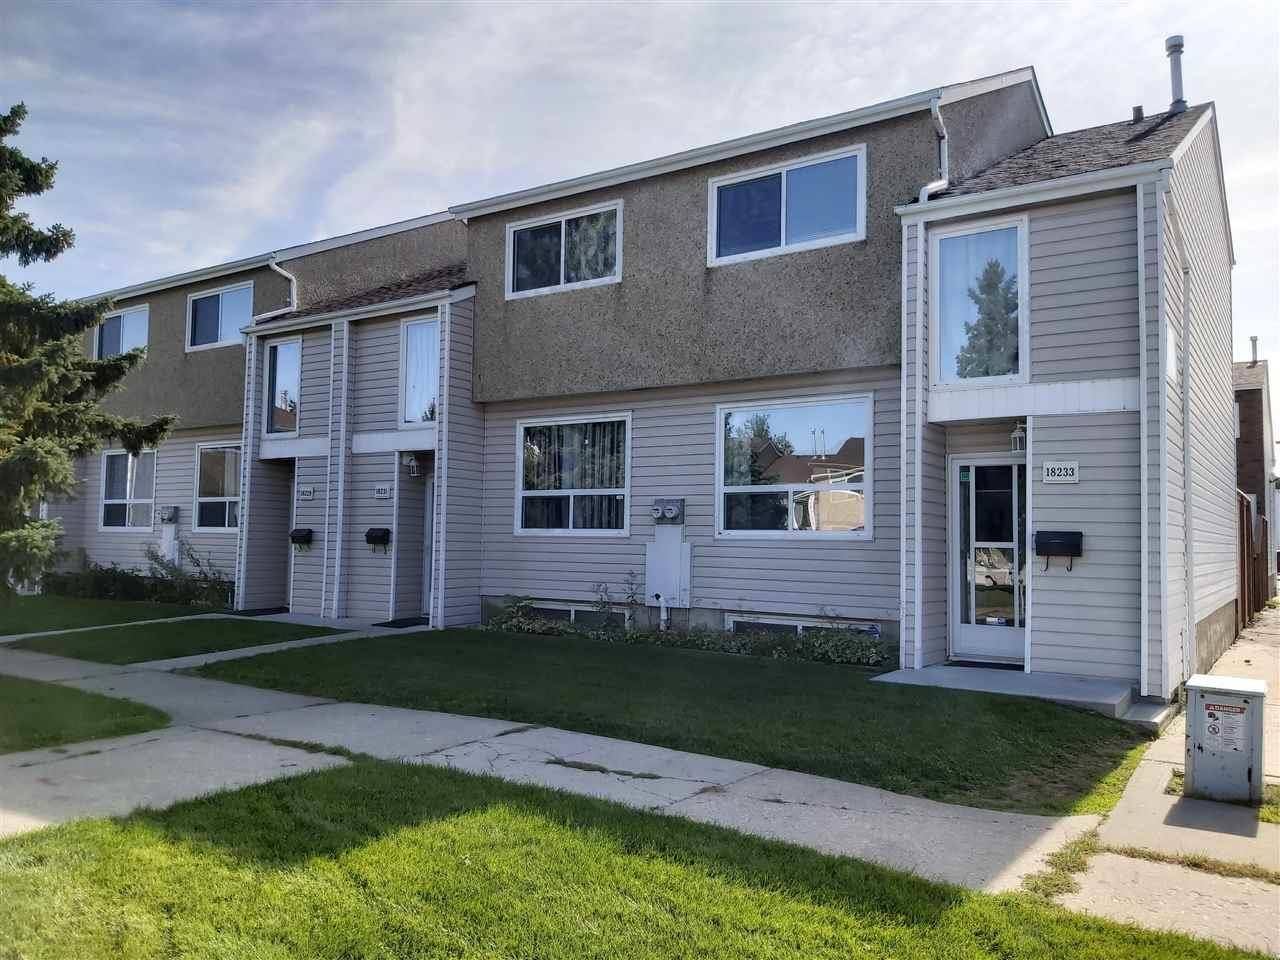 Townhouse for sale at 18233 93 Ave Nw Edmonton Alberta - MLS: E4173861